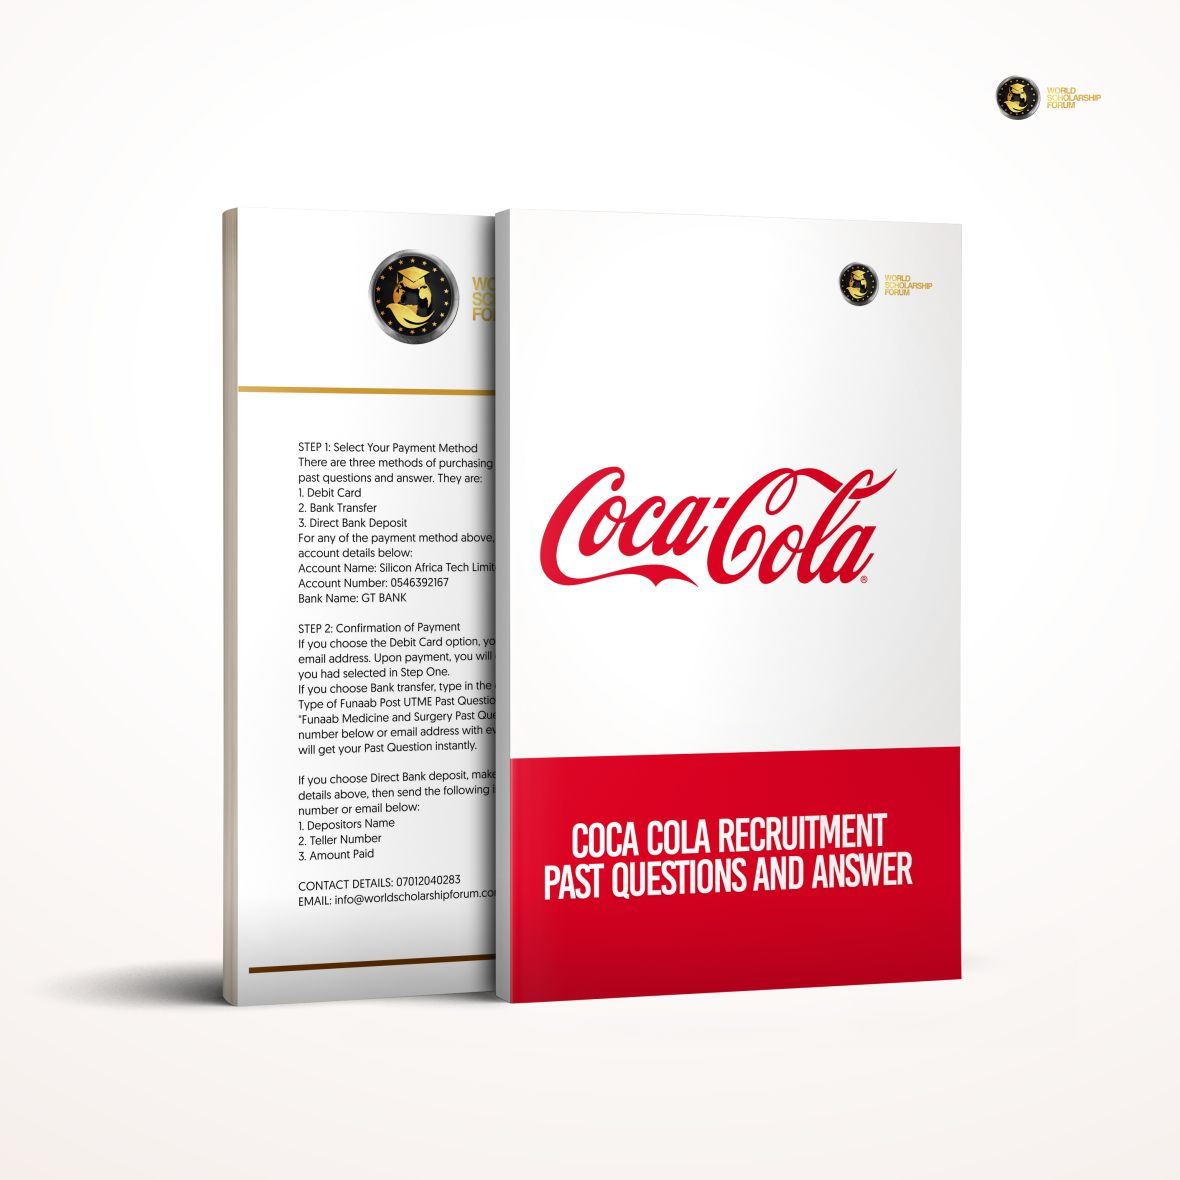 coca-cola-past-questions-answers